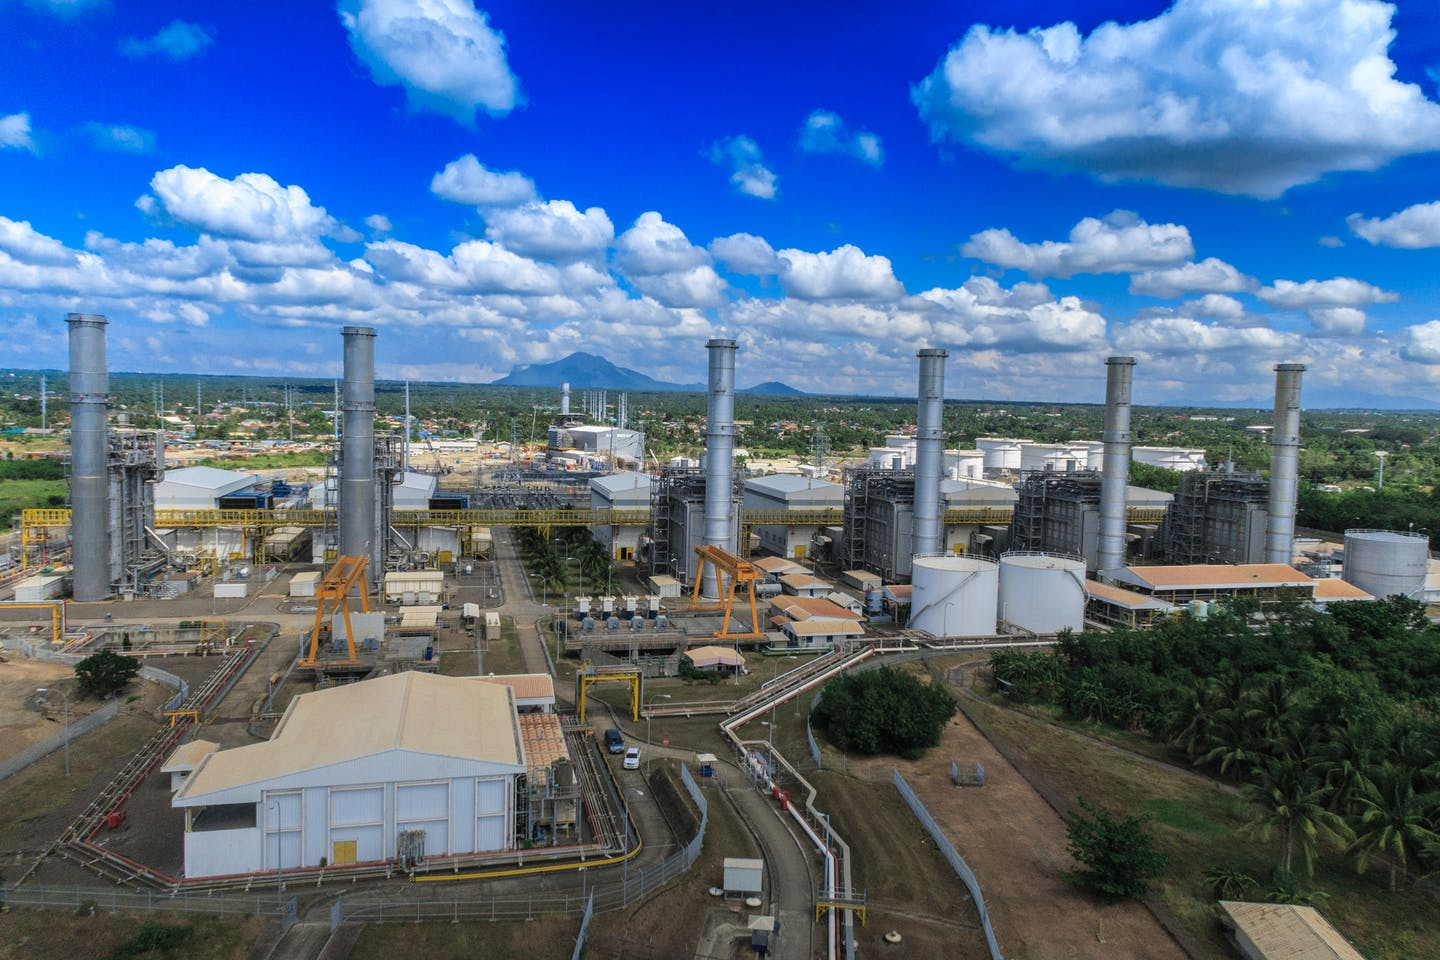 Santa Rita natural gas-fired power plant in Batangas, Philippines